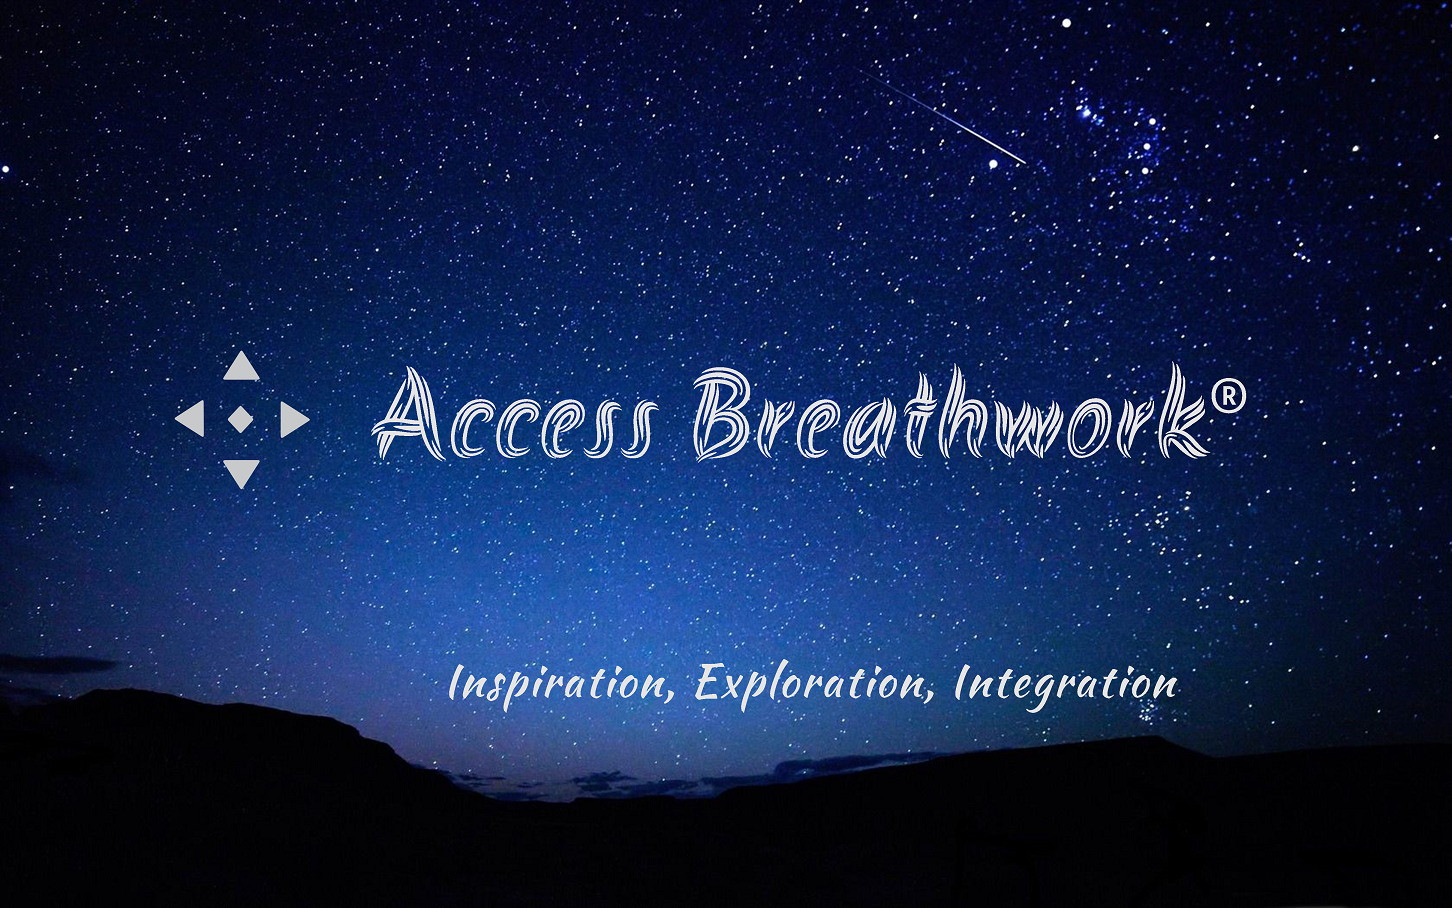 Access Breathwork